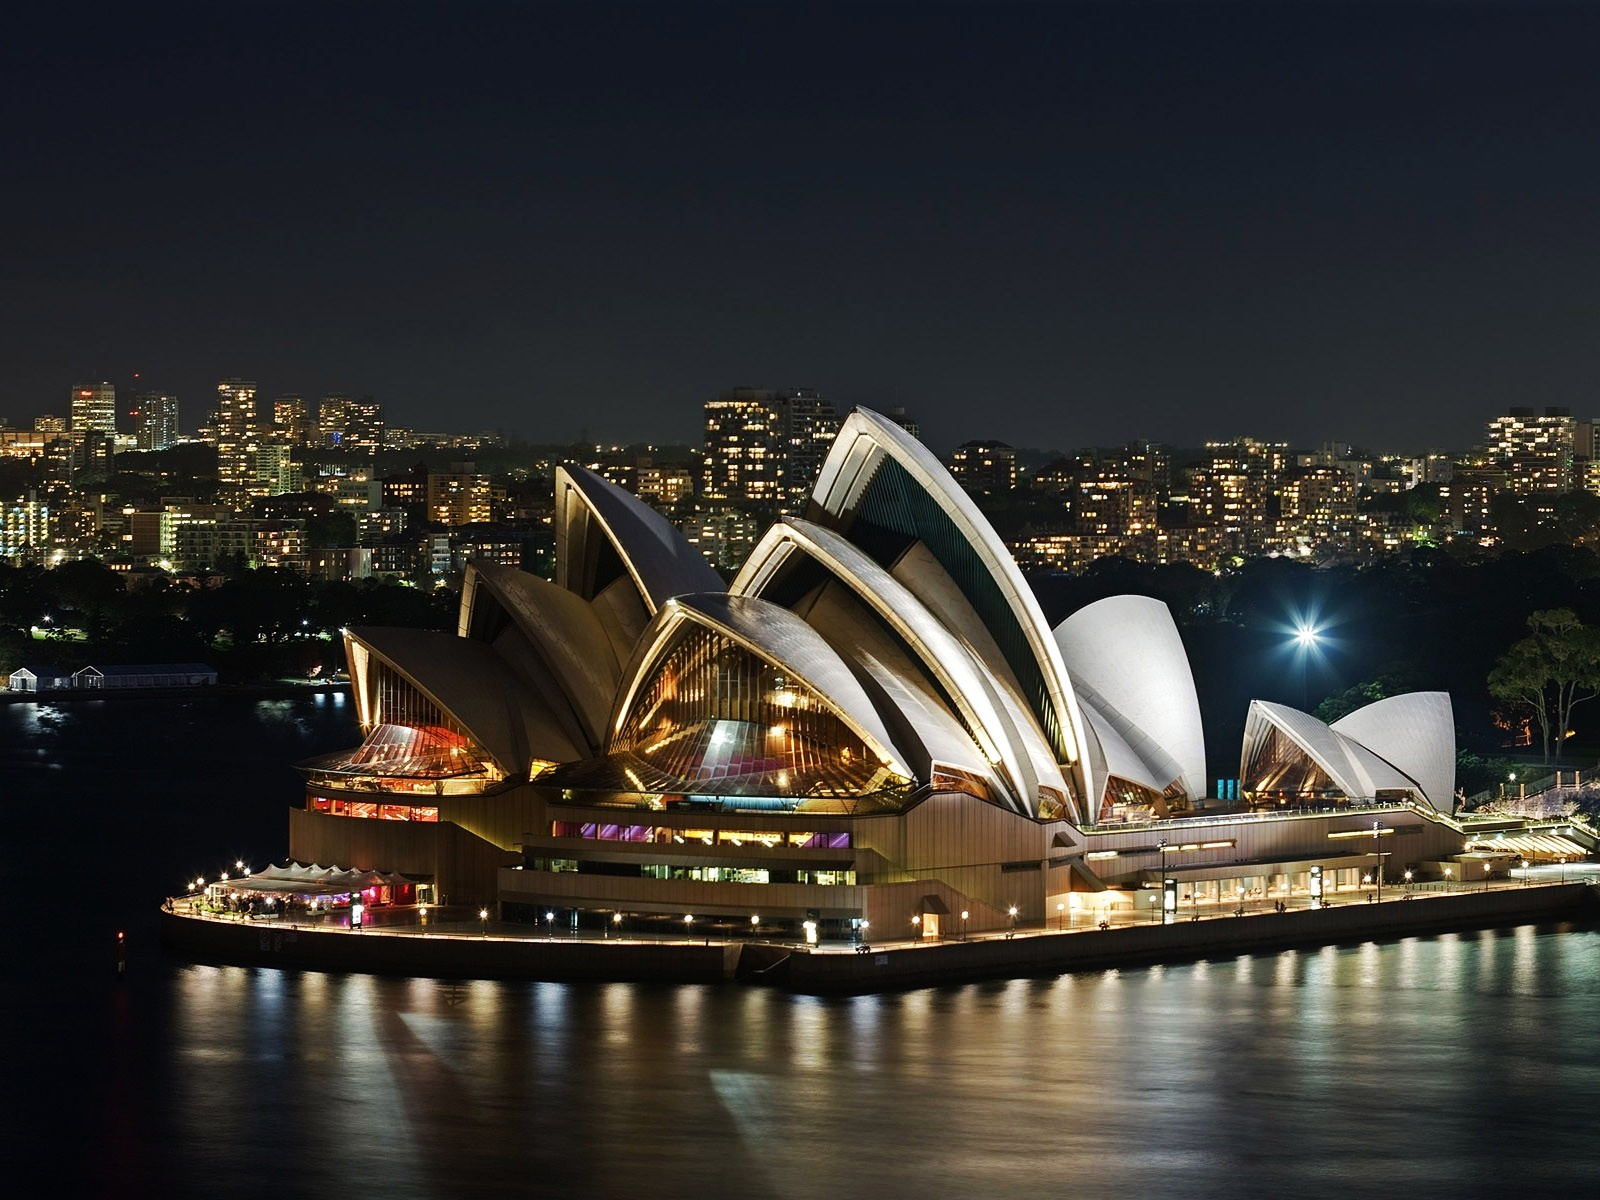 Sydney Opera House 2011 wallpaper